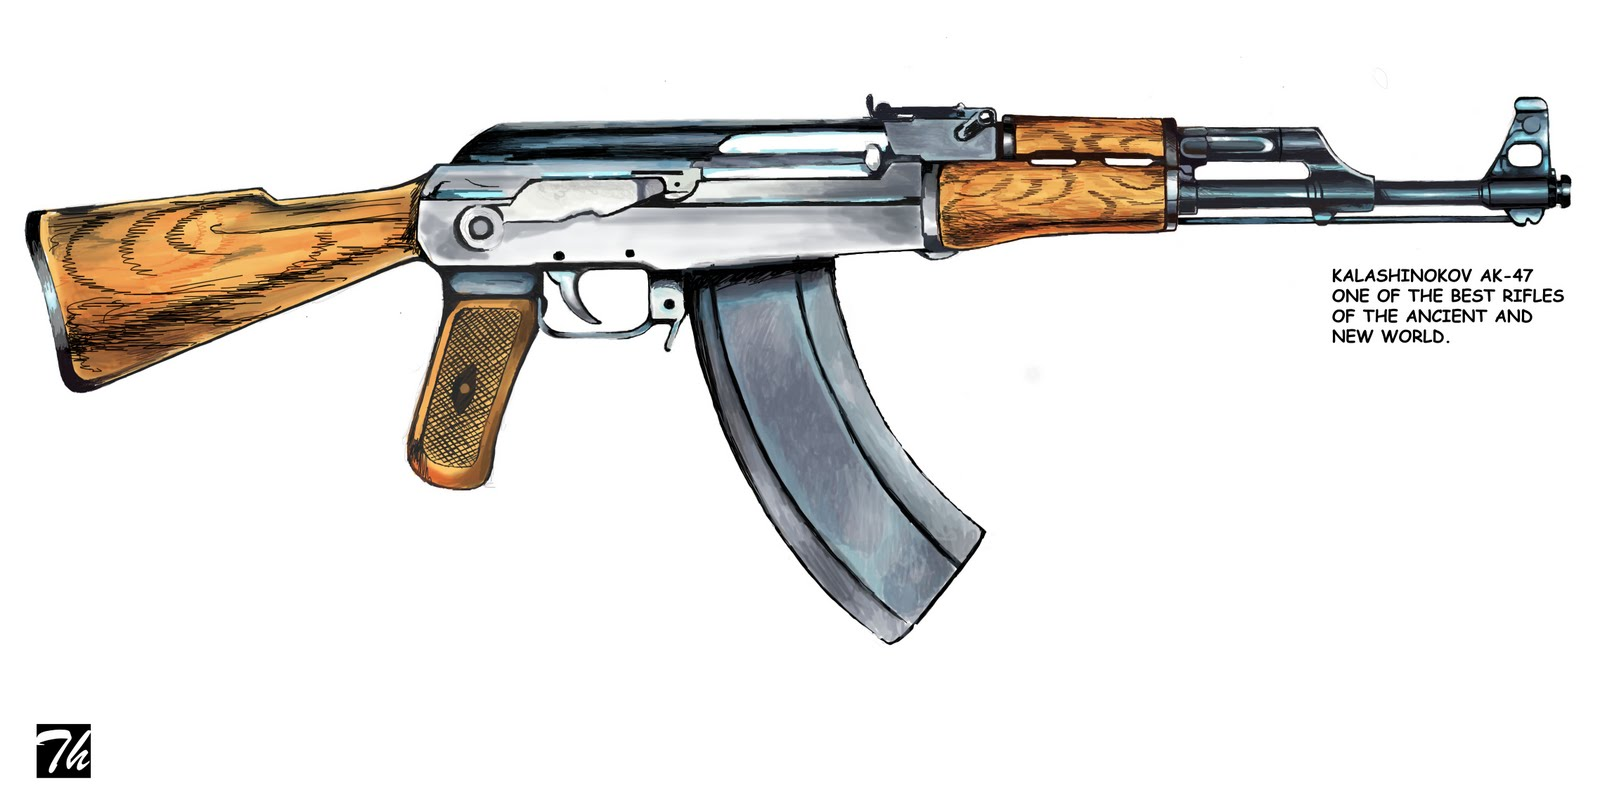 Pin Ak 47 Wallpaper Desktop Wallpapers ¡ta Pcs on Pinterest